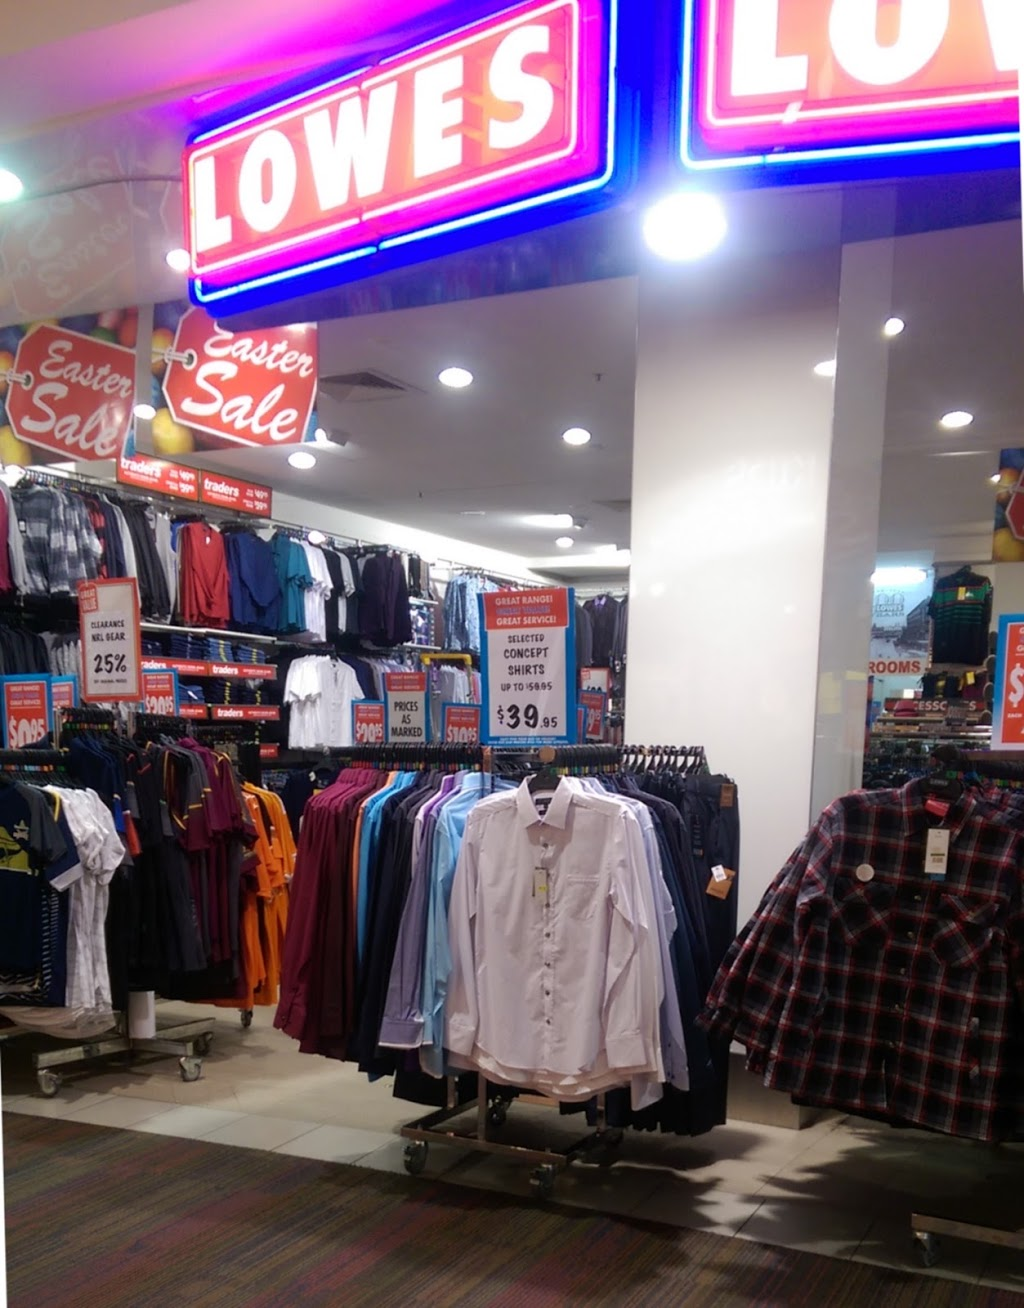 Lowes Hyde Park | clothing store | 141-142 Corner Woolcock Street and, Kings Rd, Hyde Park QLD 4812, Australia | 0747240312 OR +61 7 4724 0312